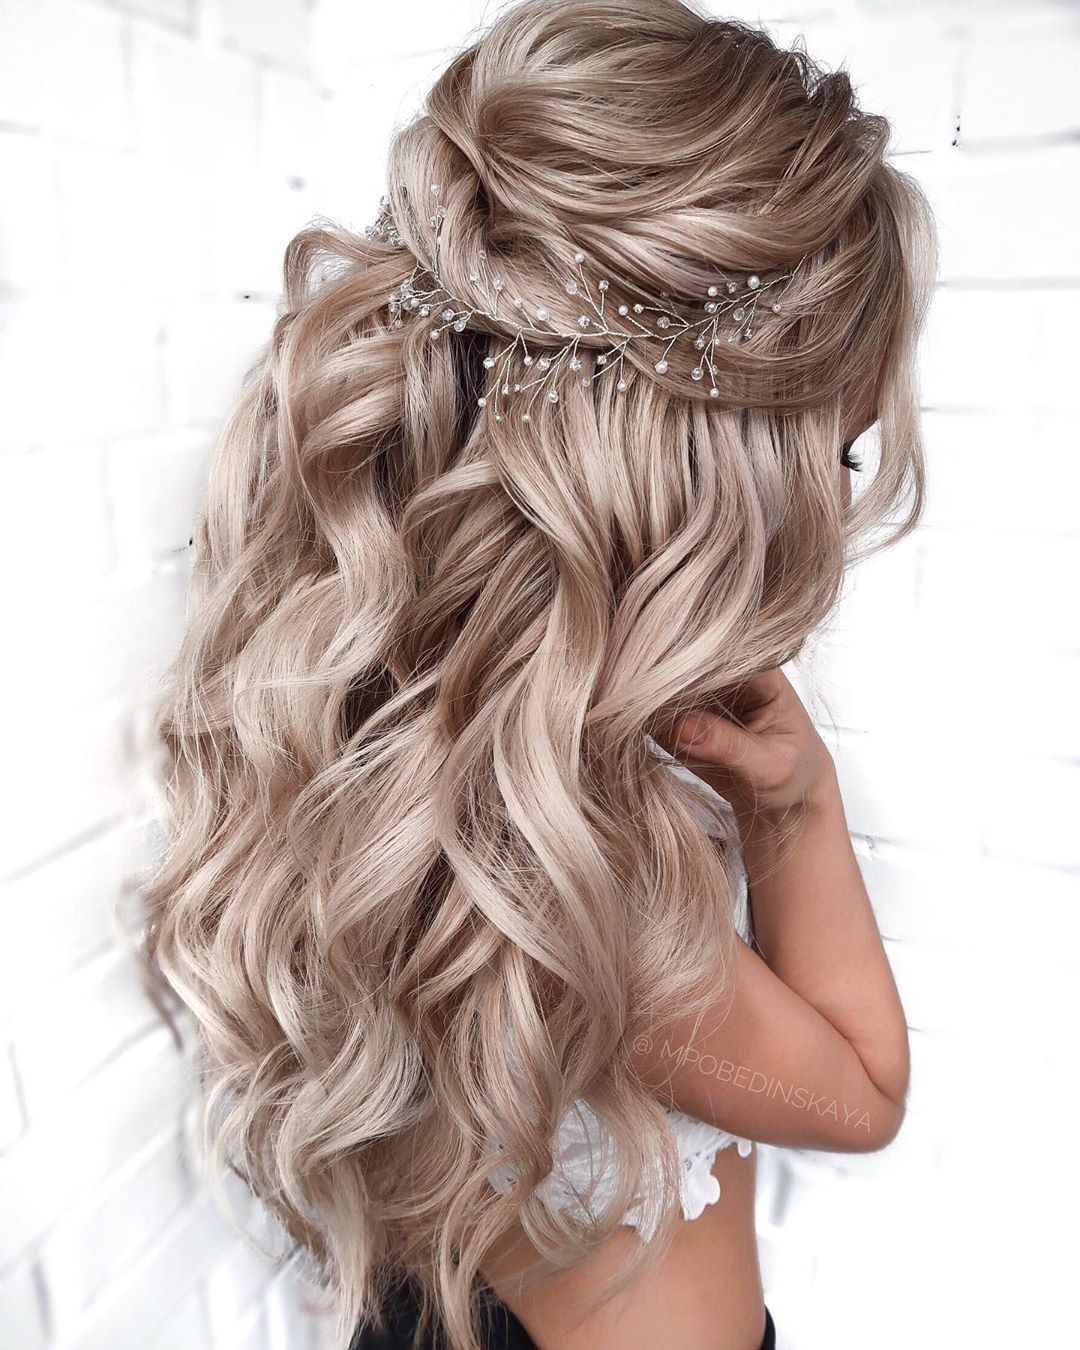 Luxury Wedding Pages On Instagram Isn T It A Classic Hairstyle Of Your Dream Double Tap Leave Your Resp In 2020 Bridal Hair Vine Hair Vine Wedding Hair Styles